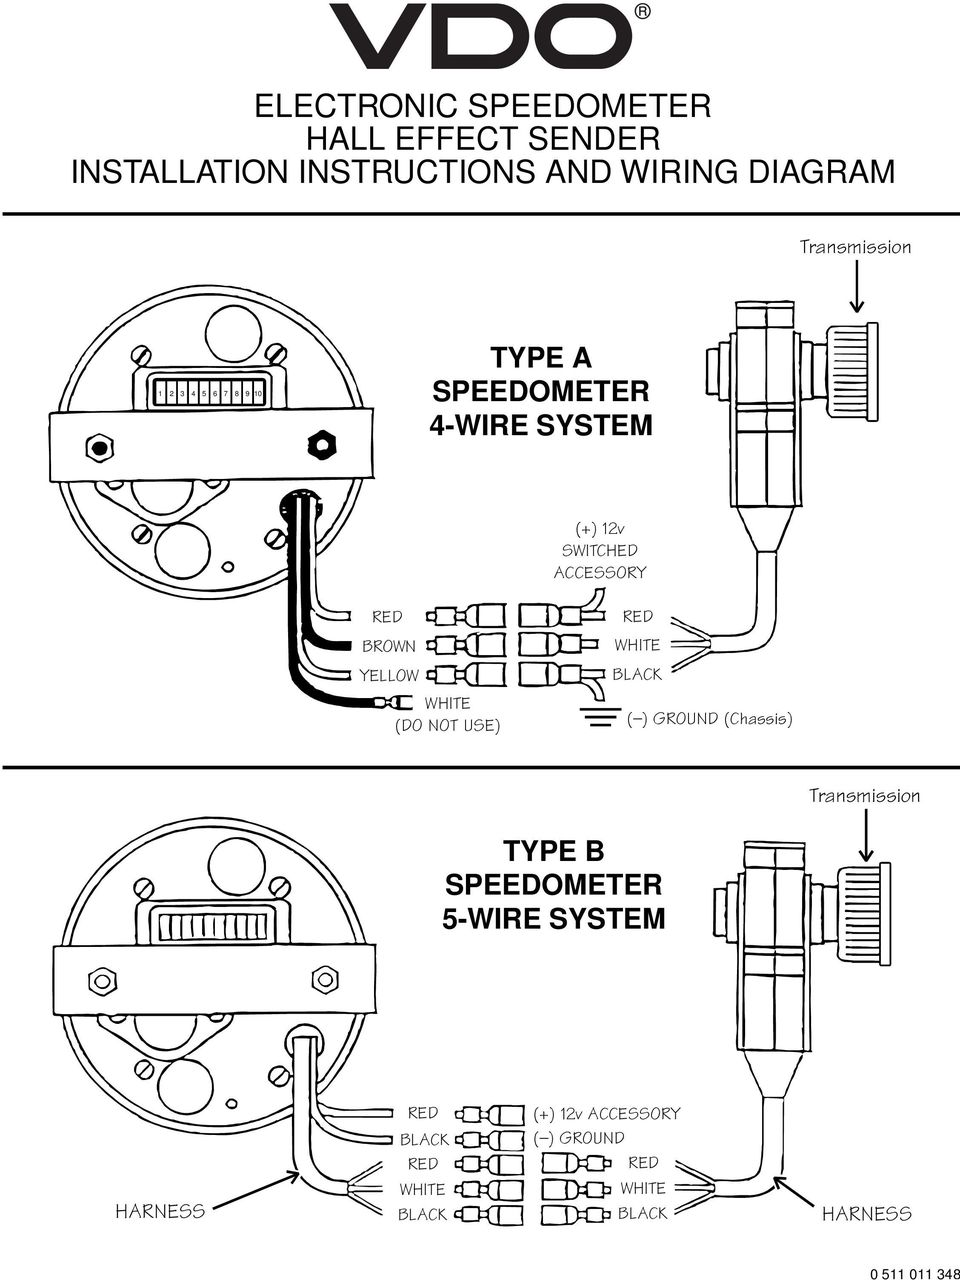 vdo kitas wiring diagram vdo gauge wiring diagram 1 211 012 372 speedometer